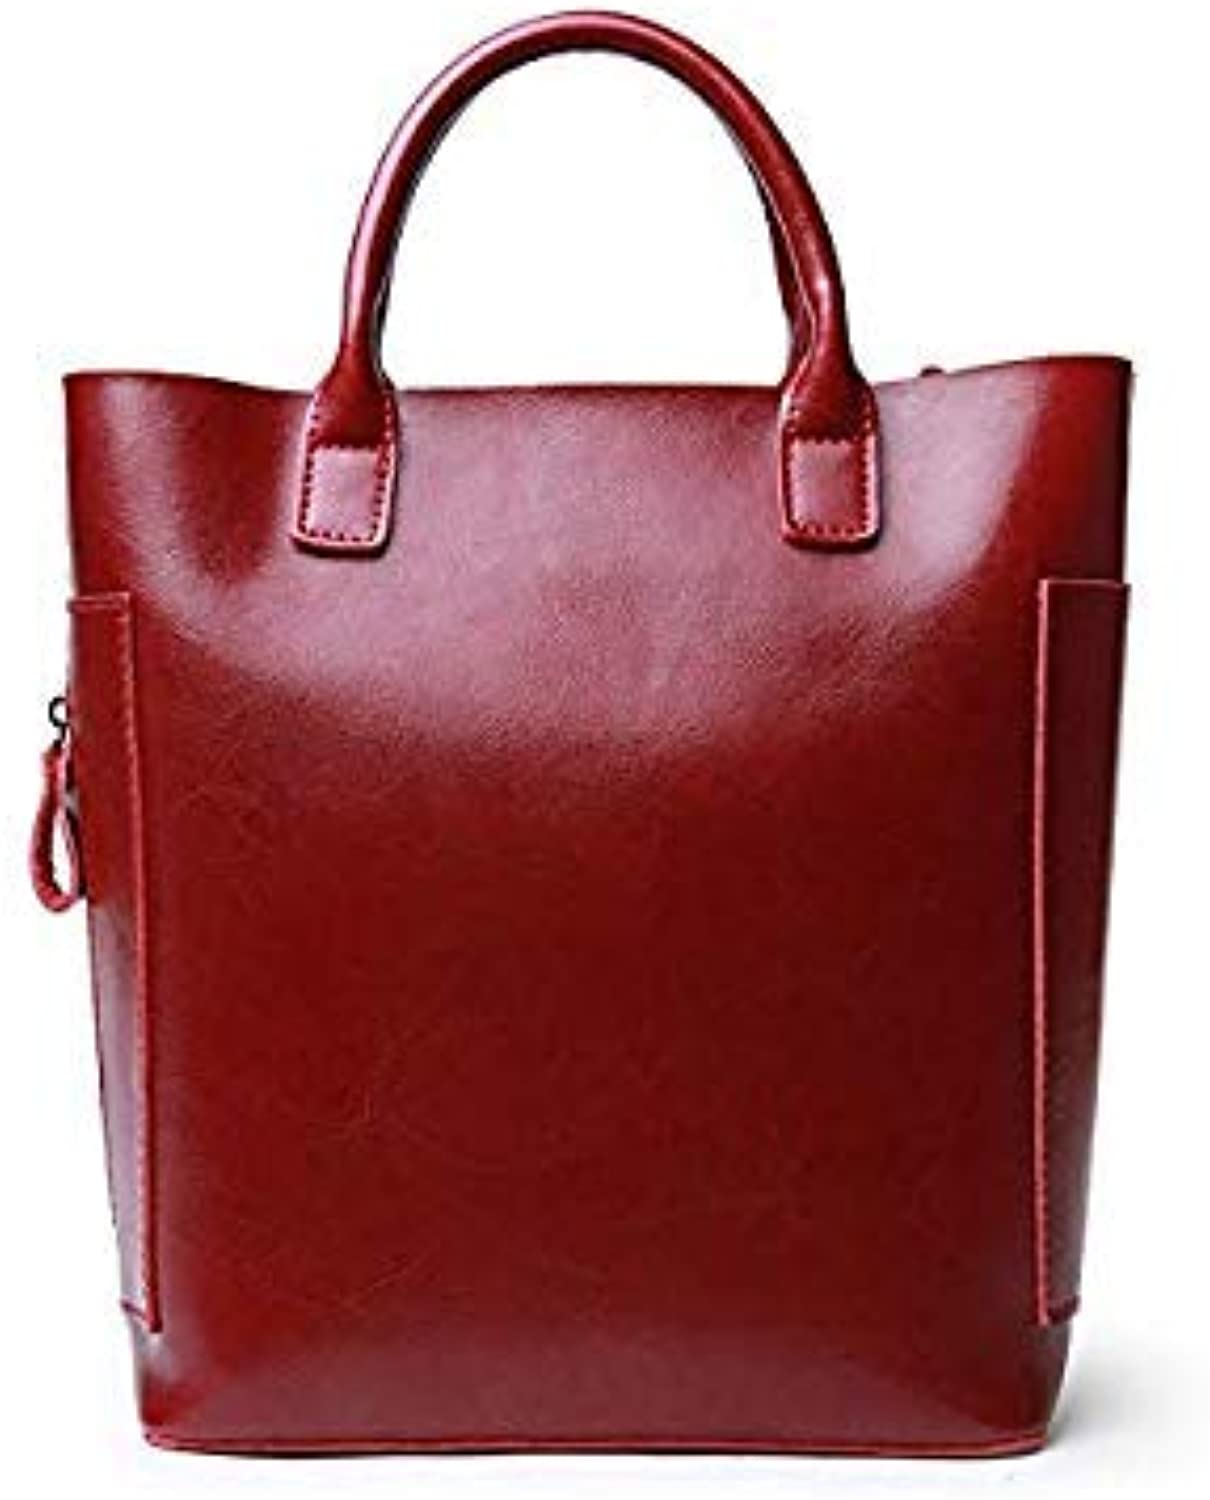 Bloomerang QIAOBAO Genuine Leather Handbag Tote Over Shoulder Crossbody Autumn Winter Leather Famous Brand Casual Designer Female Bolsas color Burgundy 31x12x28CM